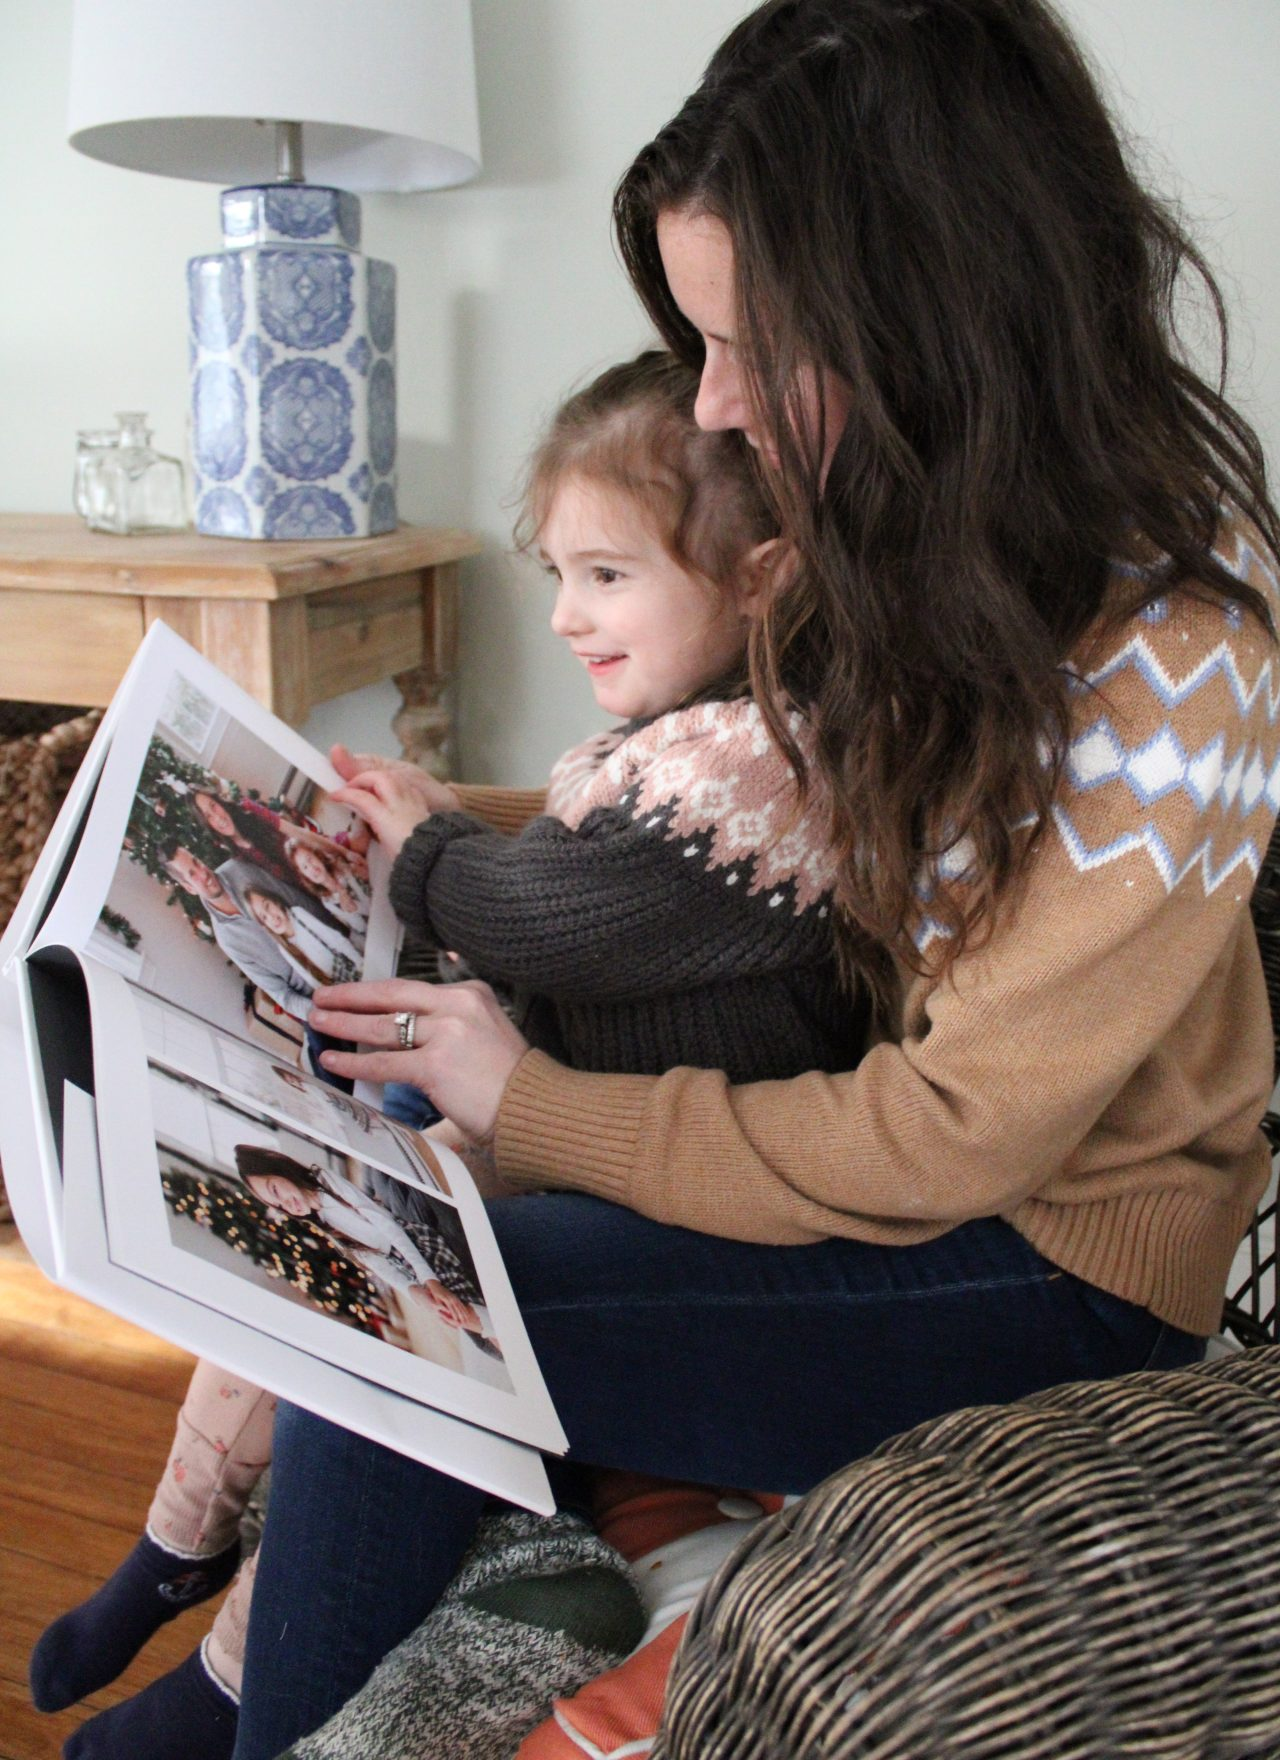 mom looking at photo book with daughter